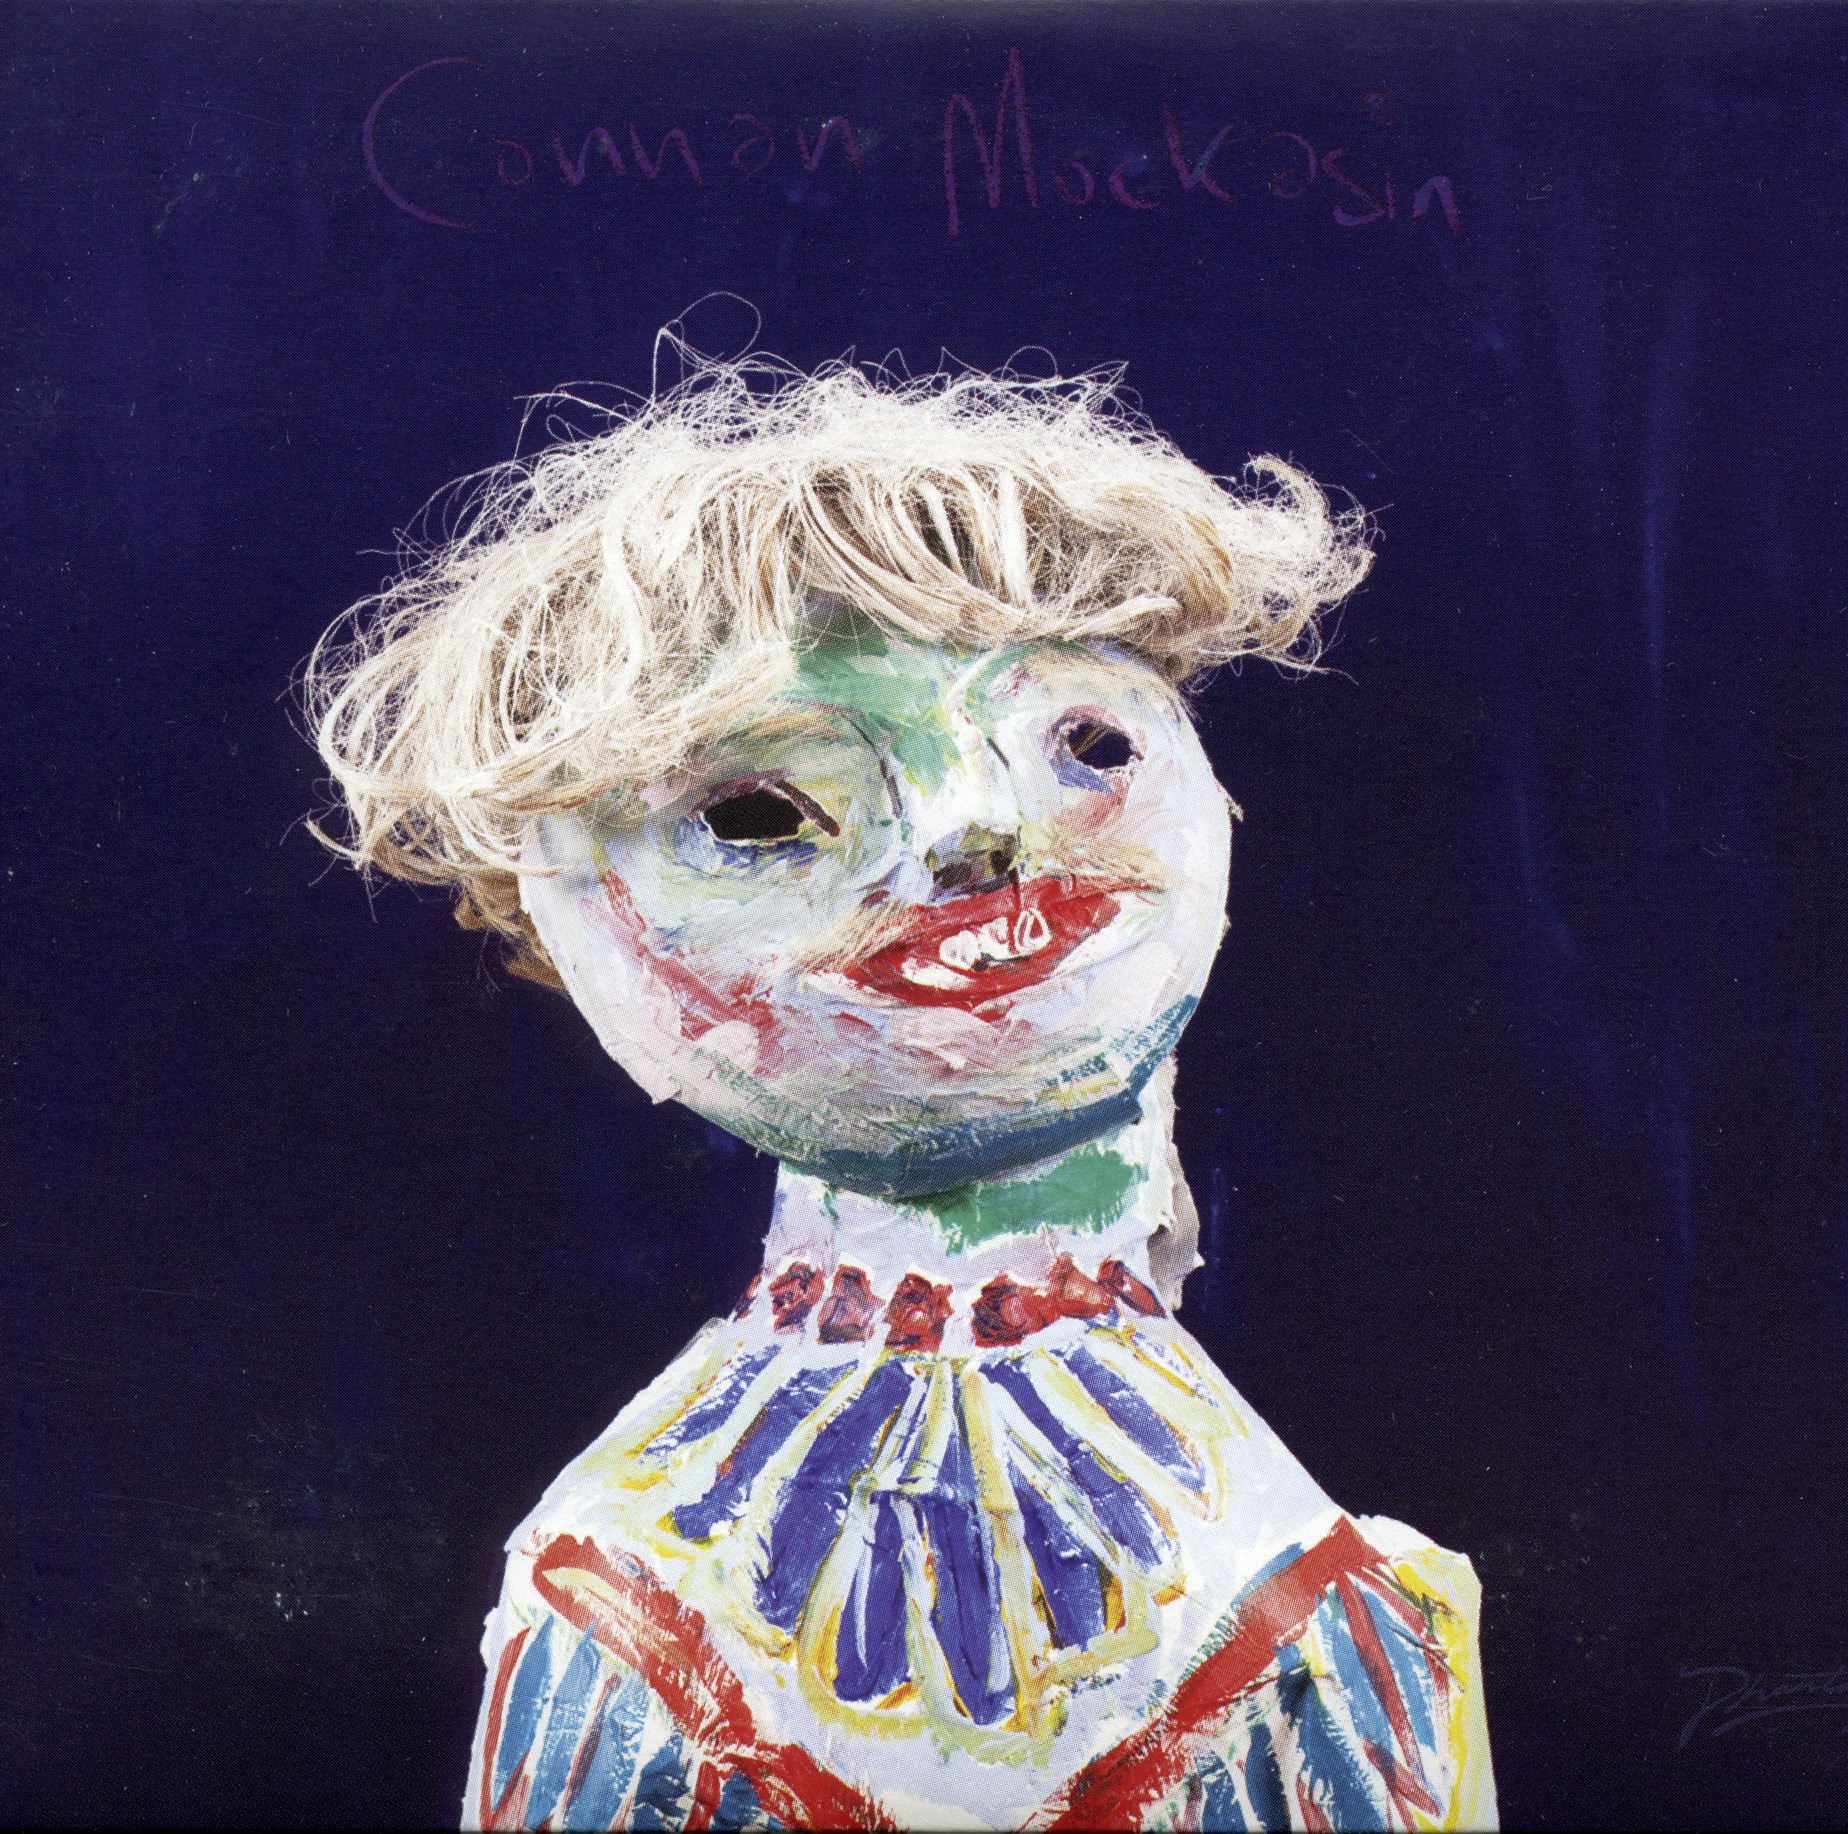 2011 - Connan Mockasin